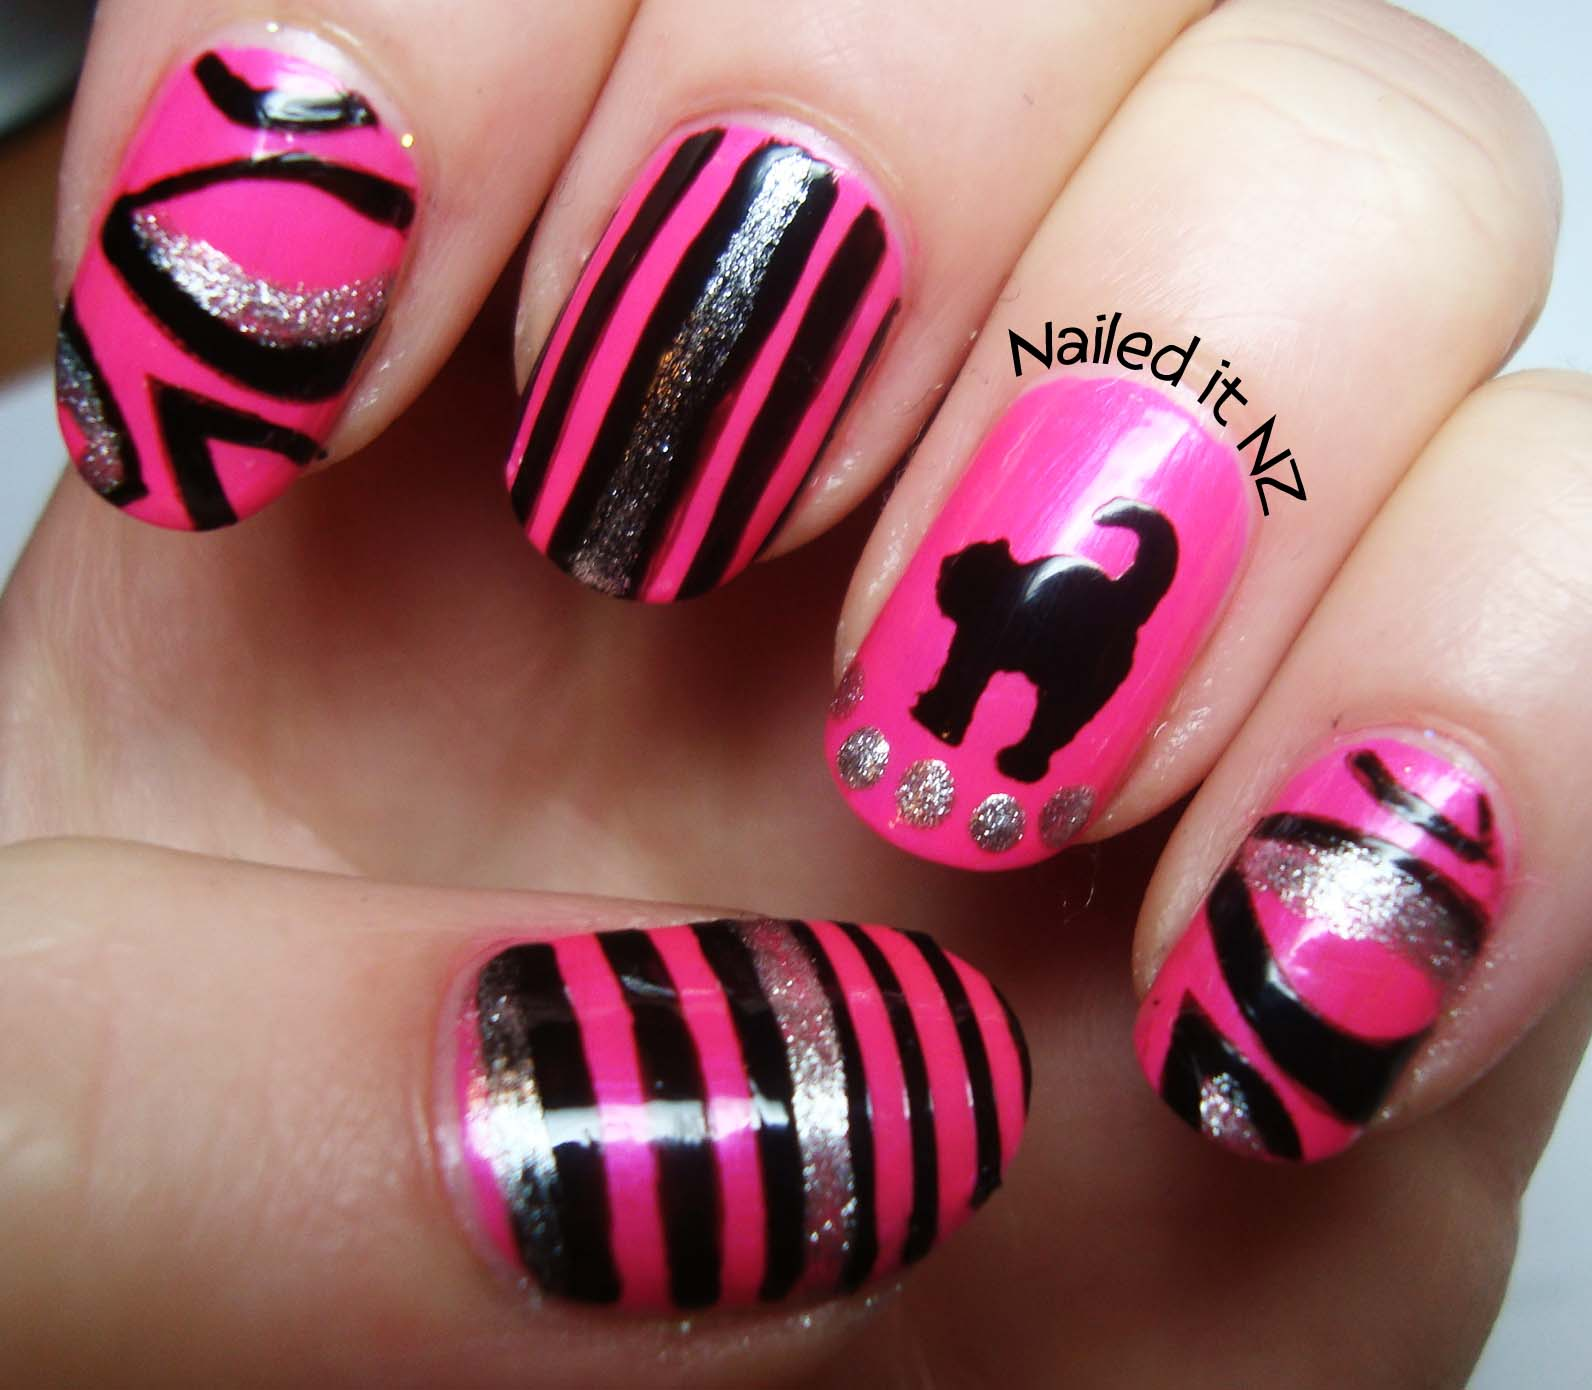 hot designs nail art ideas hot designs nail art re re new hot pink - Hot Designs Nail Art Ideas